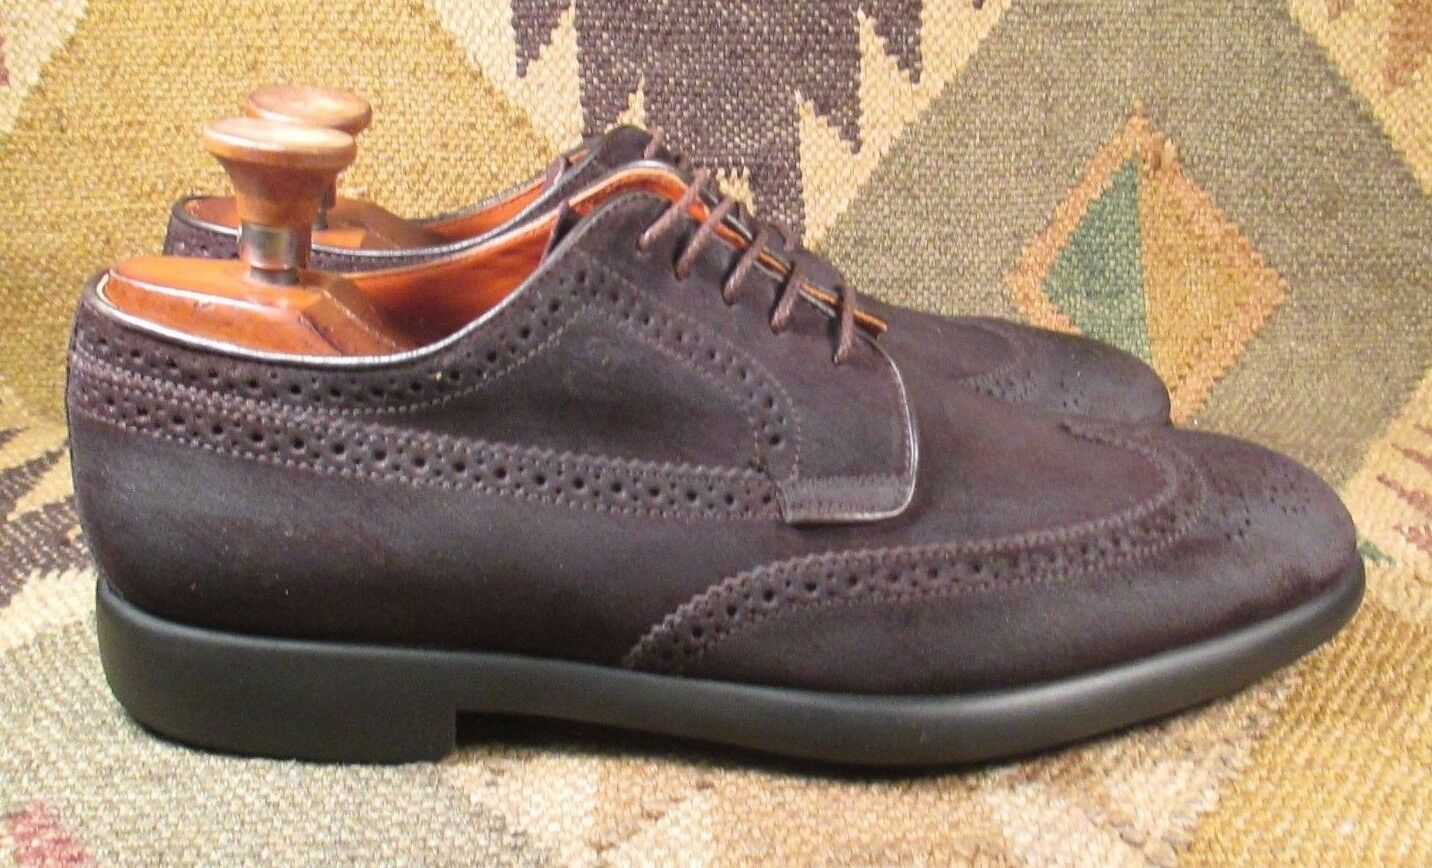 Campanile Brown Suede Pelle Wingtip Oxfords size  A-9.5 made in Italy 5fa4af